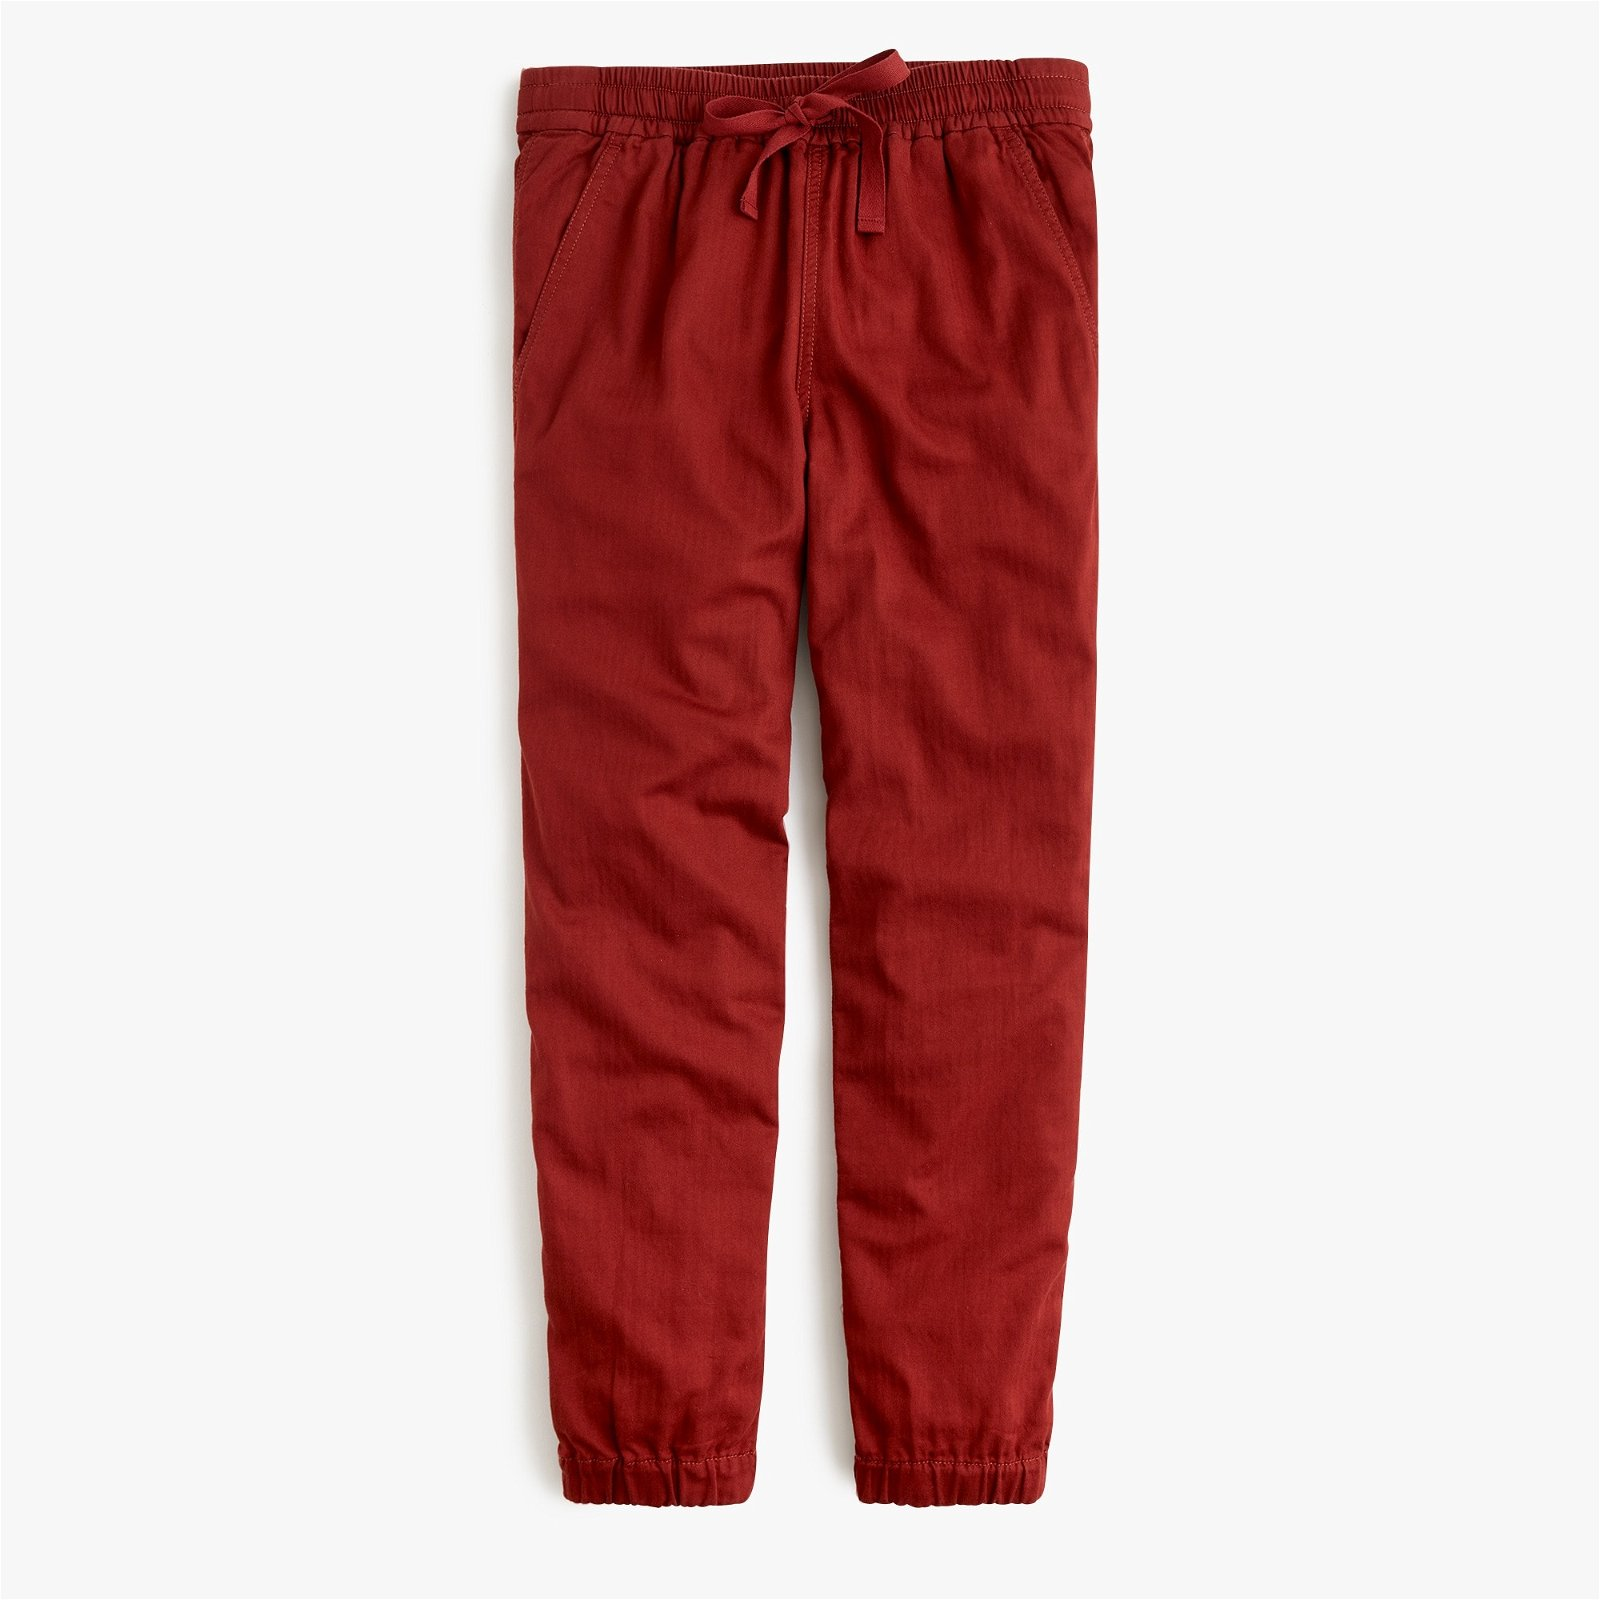 Classic Point Sur seaside pant in cotton twill